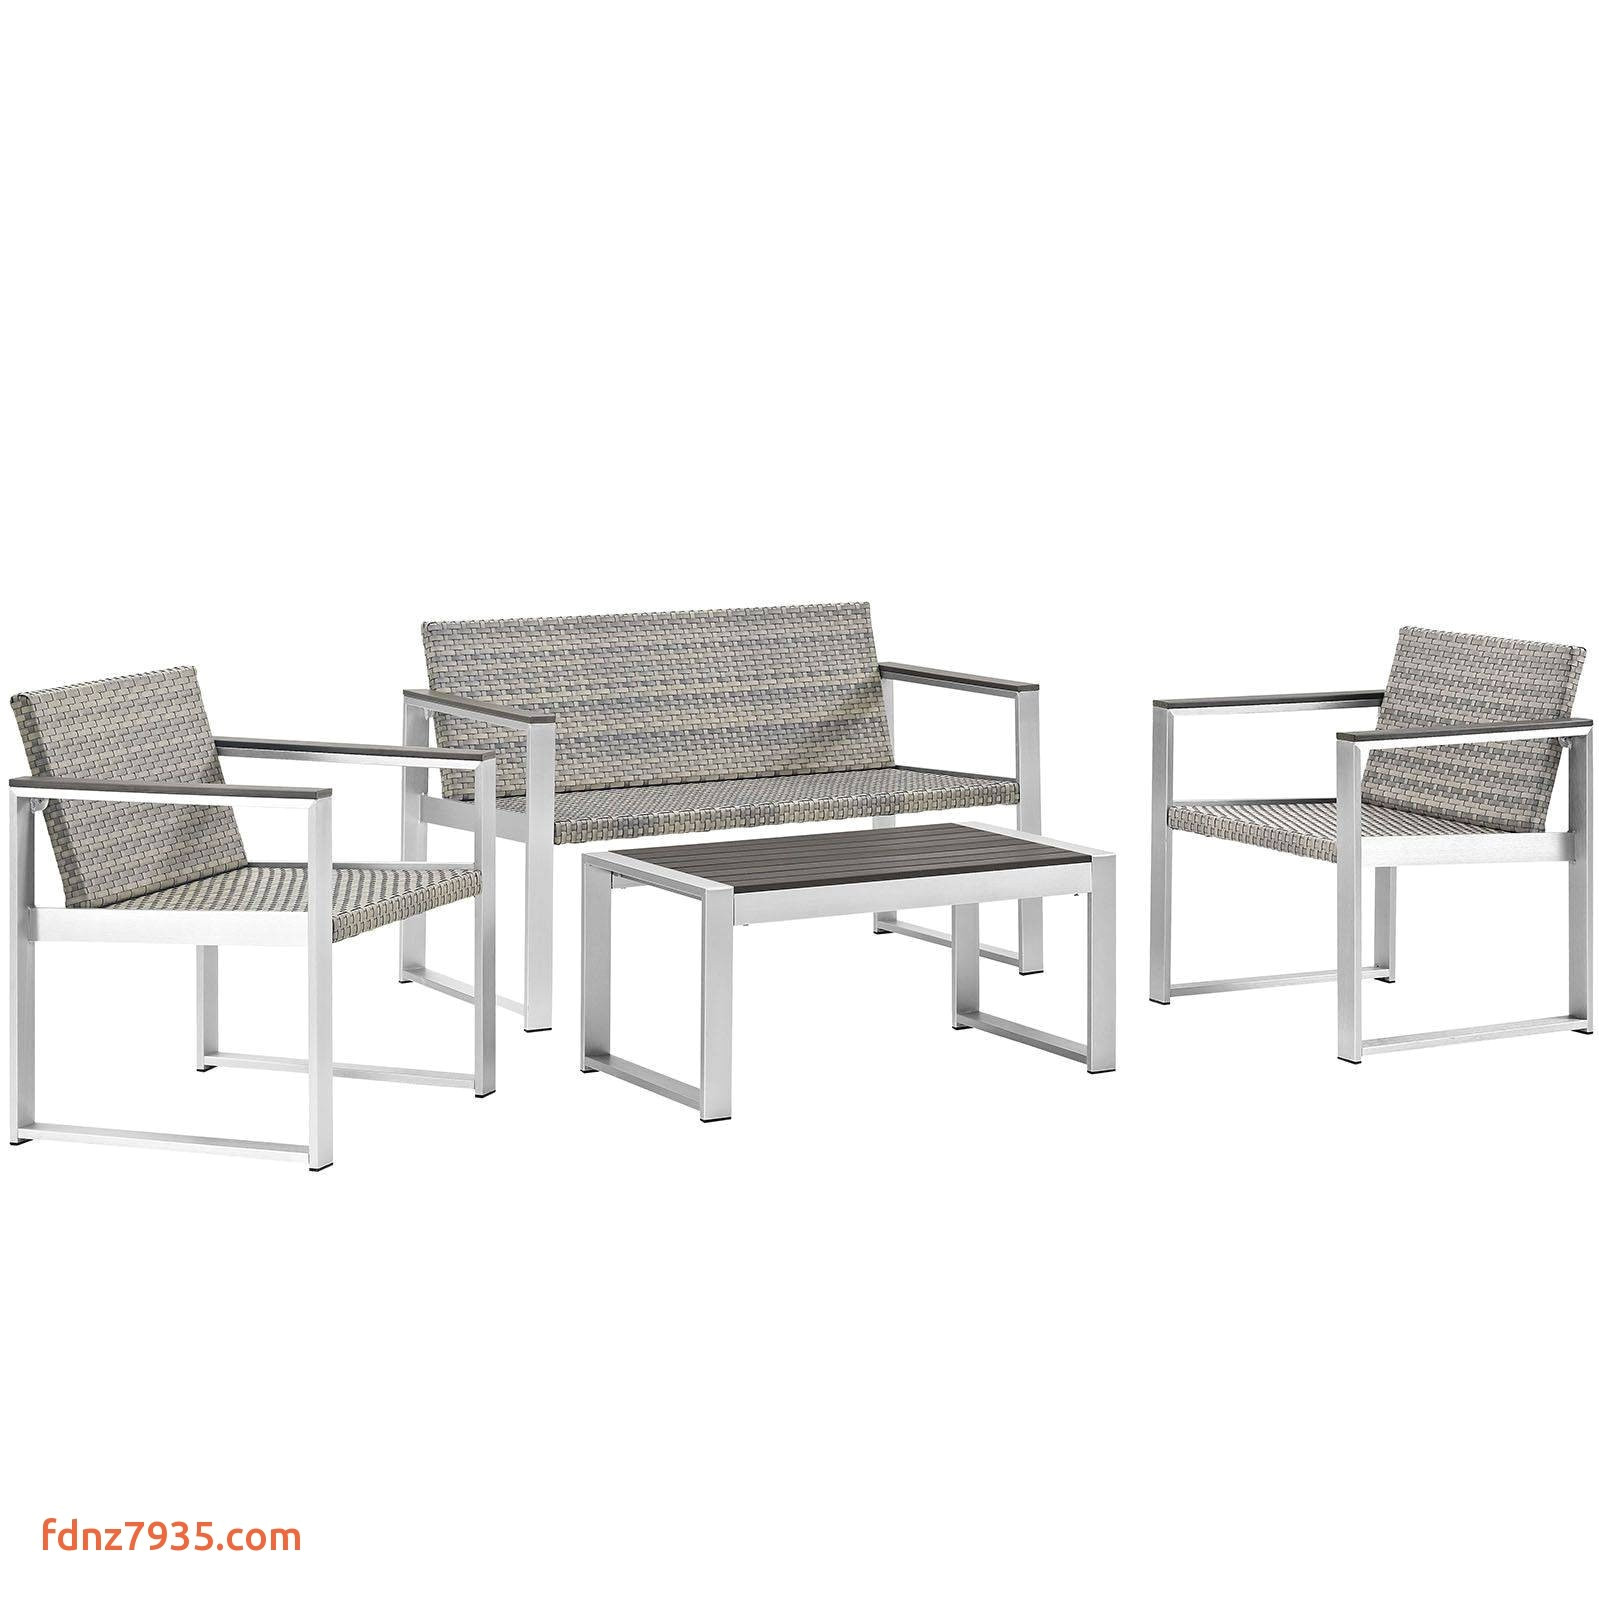 patio dining table lovely wicker outdoor sofa 0d patio chairs sale ideas small outdoor dining